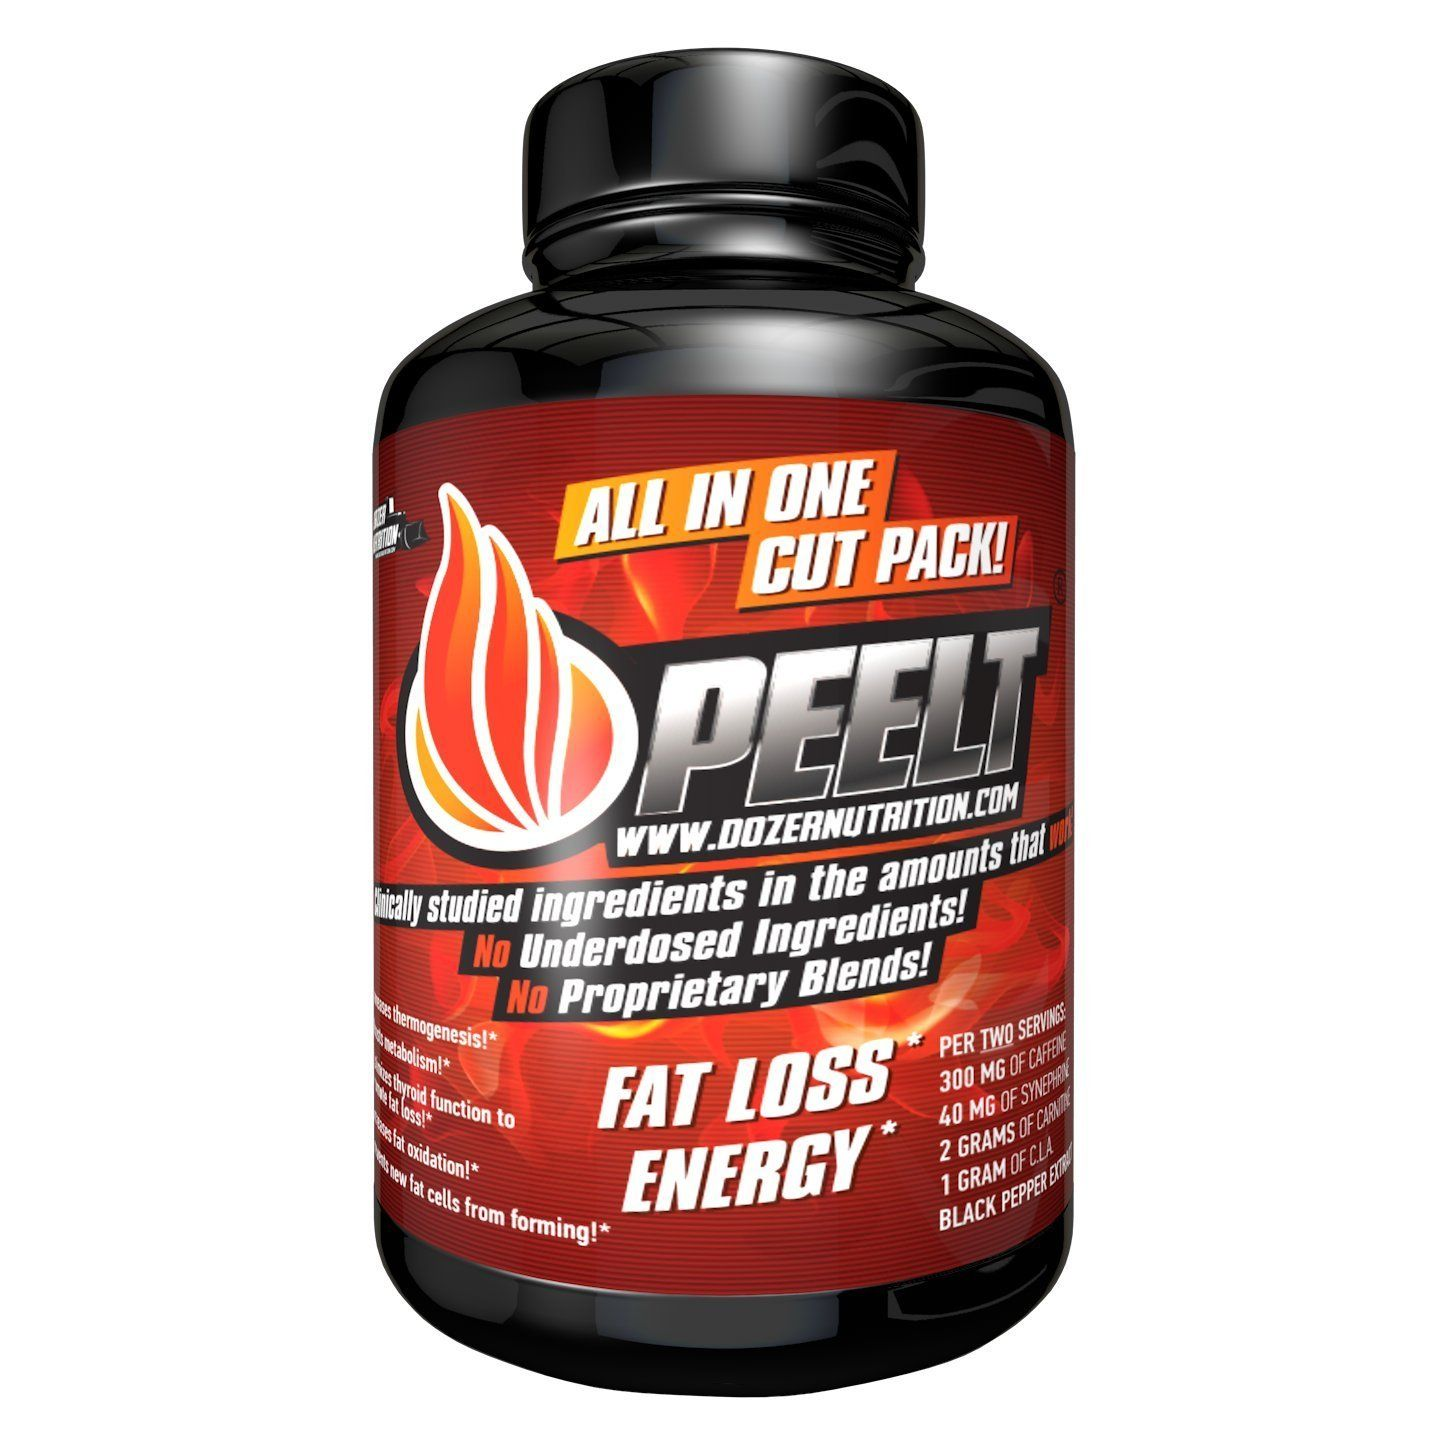 Safest Fat Burning Supplements